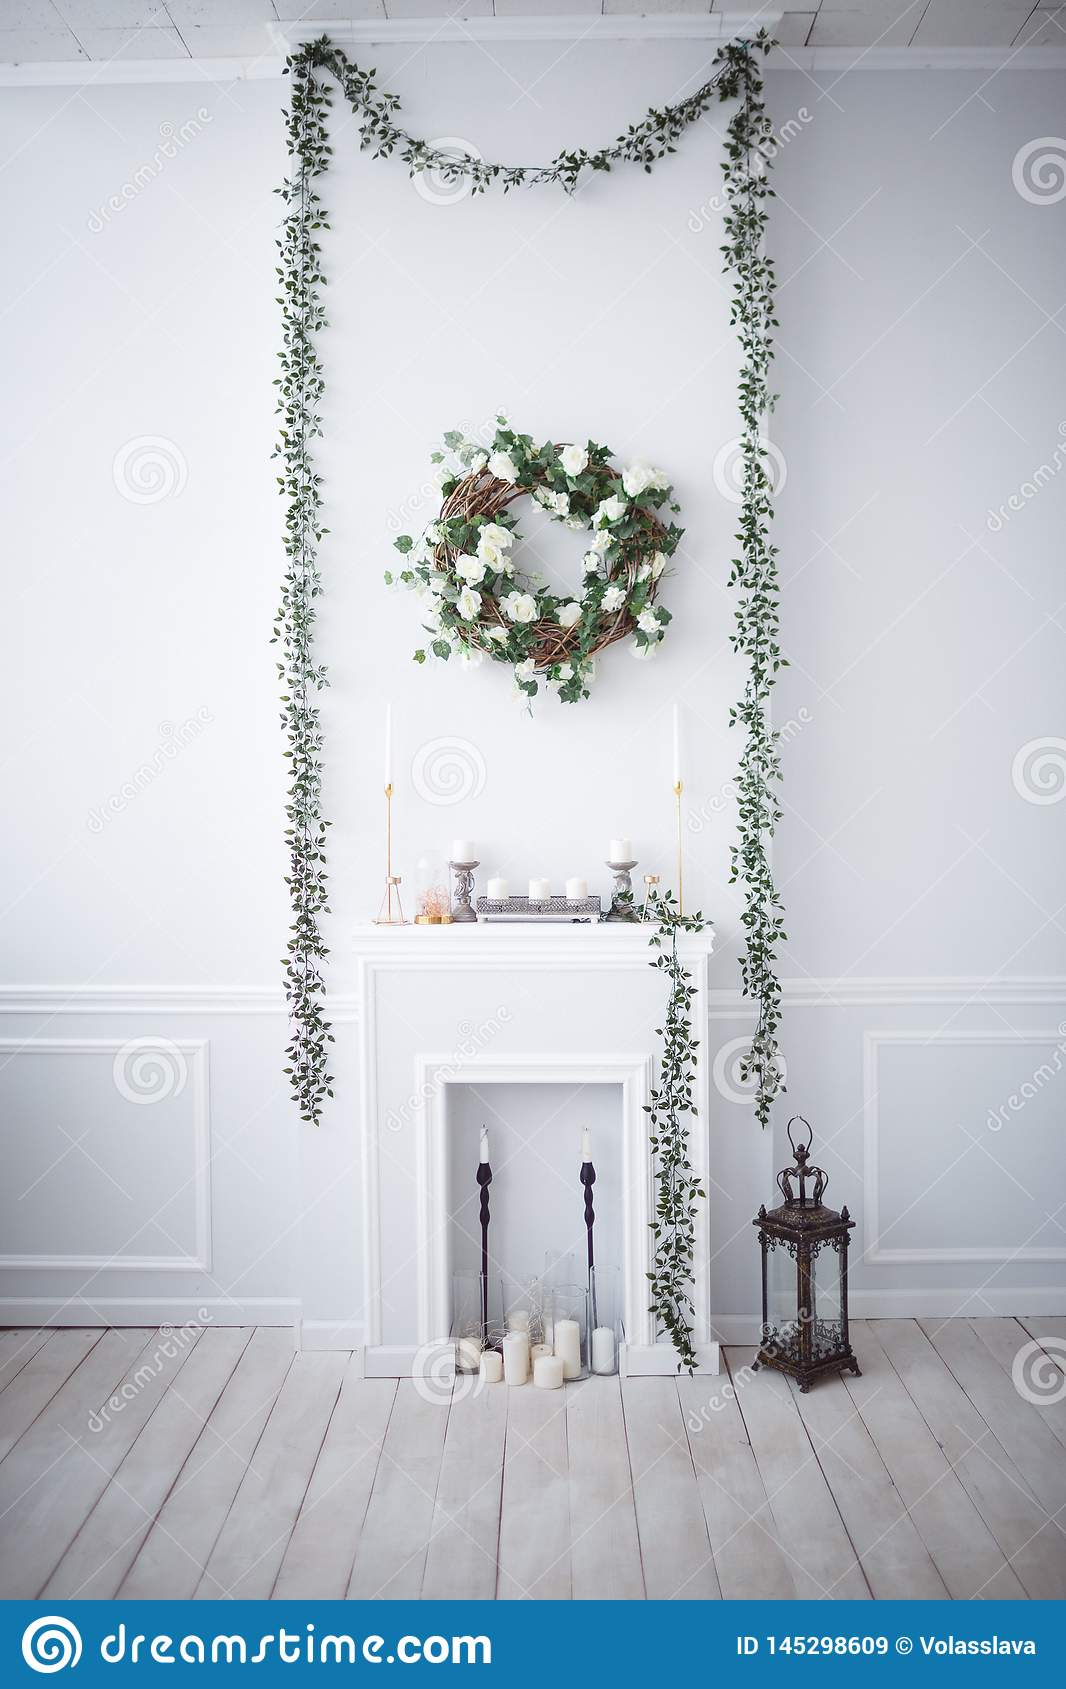 Fireplace in the white room